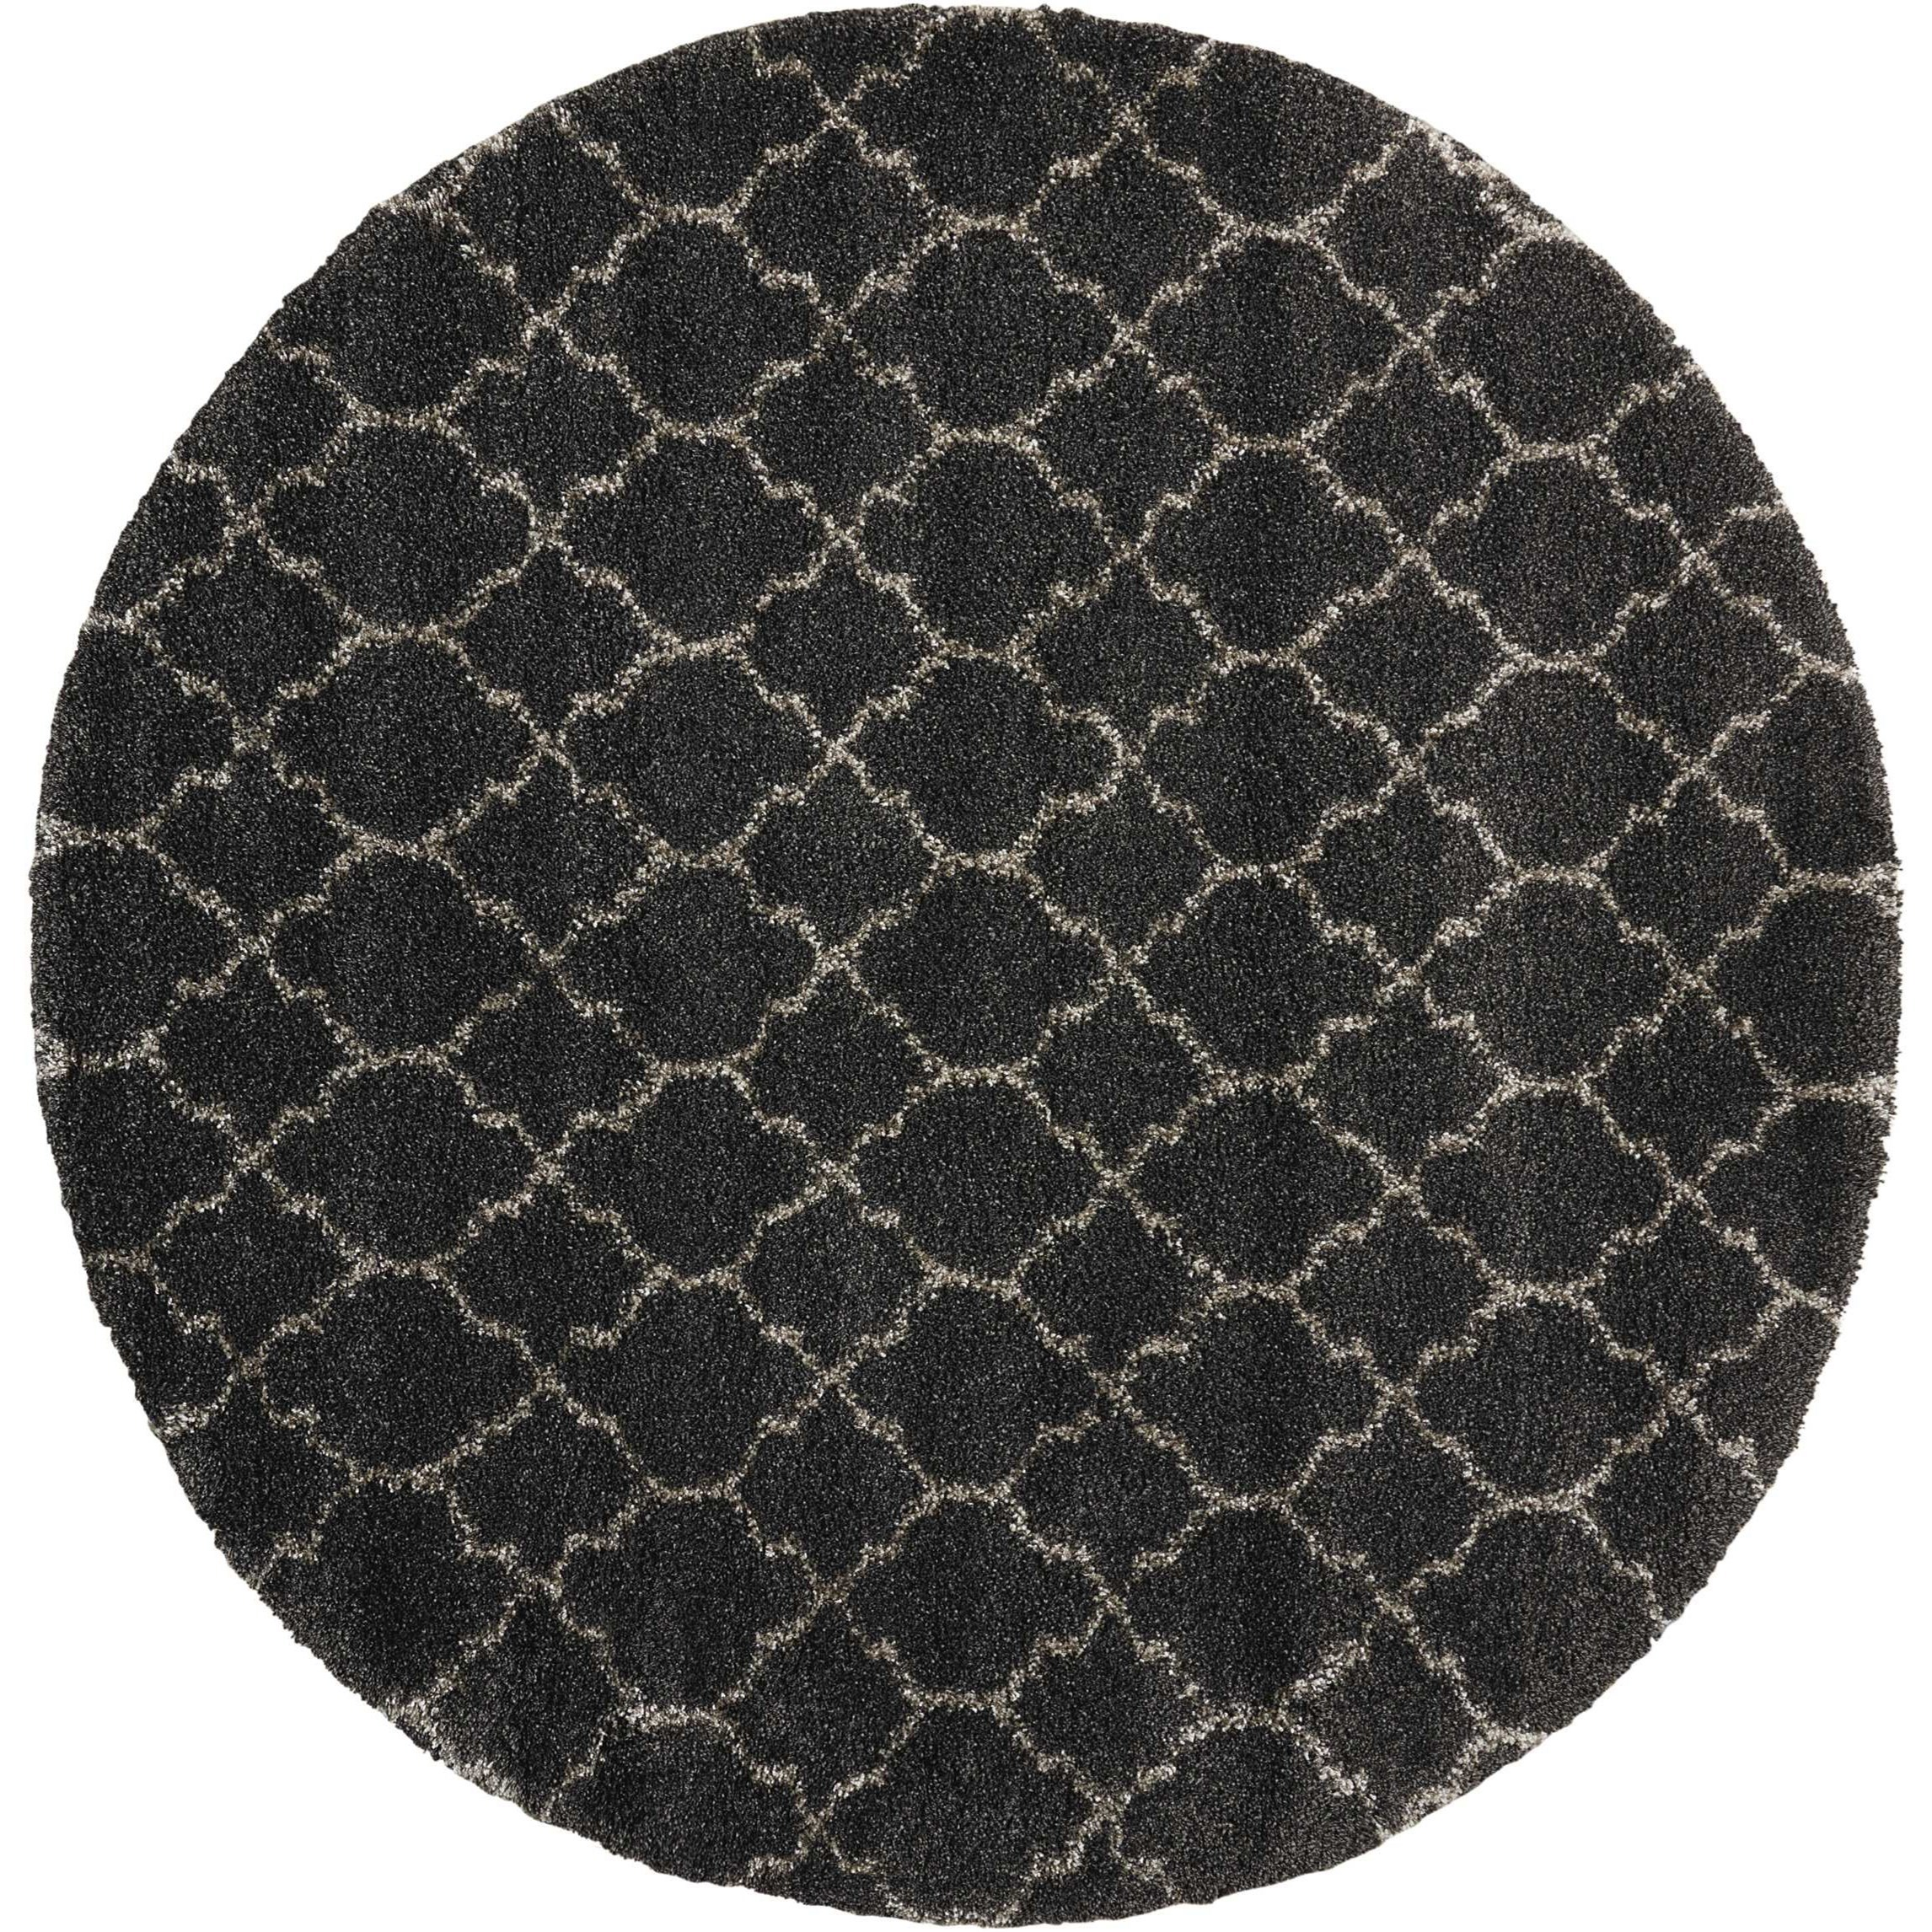 Amore Amore AMOR2 Black 8' Round   Rug by Nourison at Home Collections Furniture